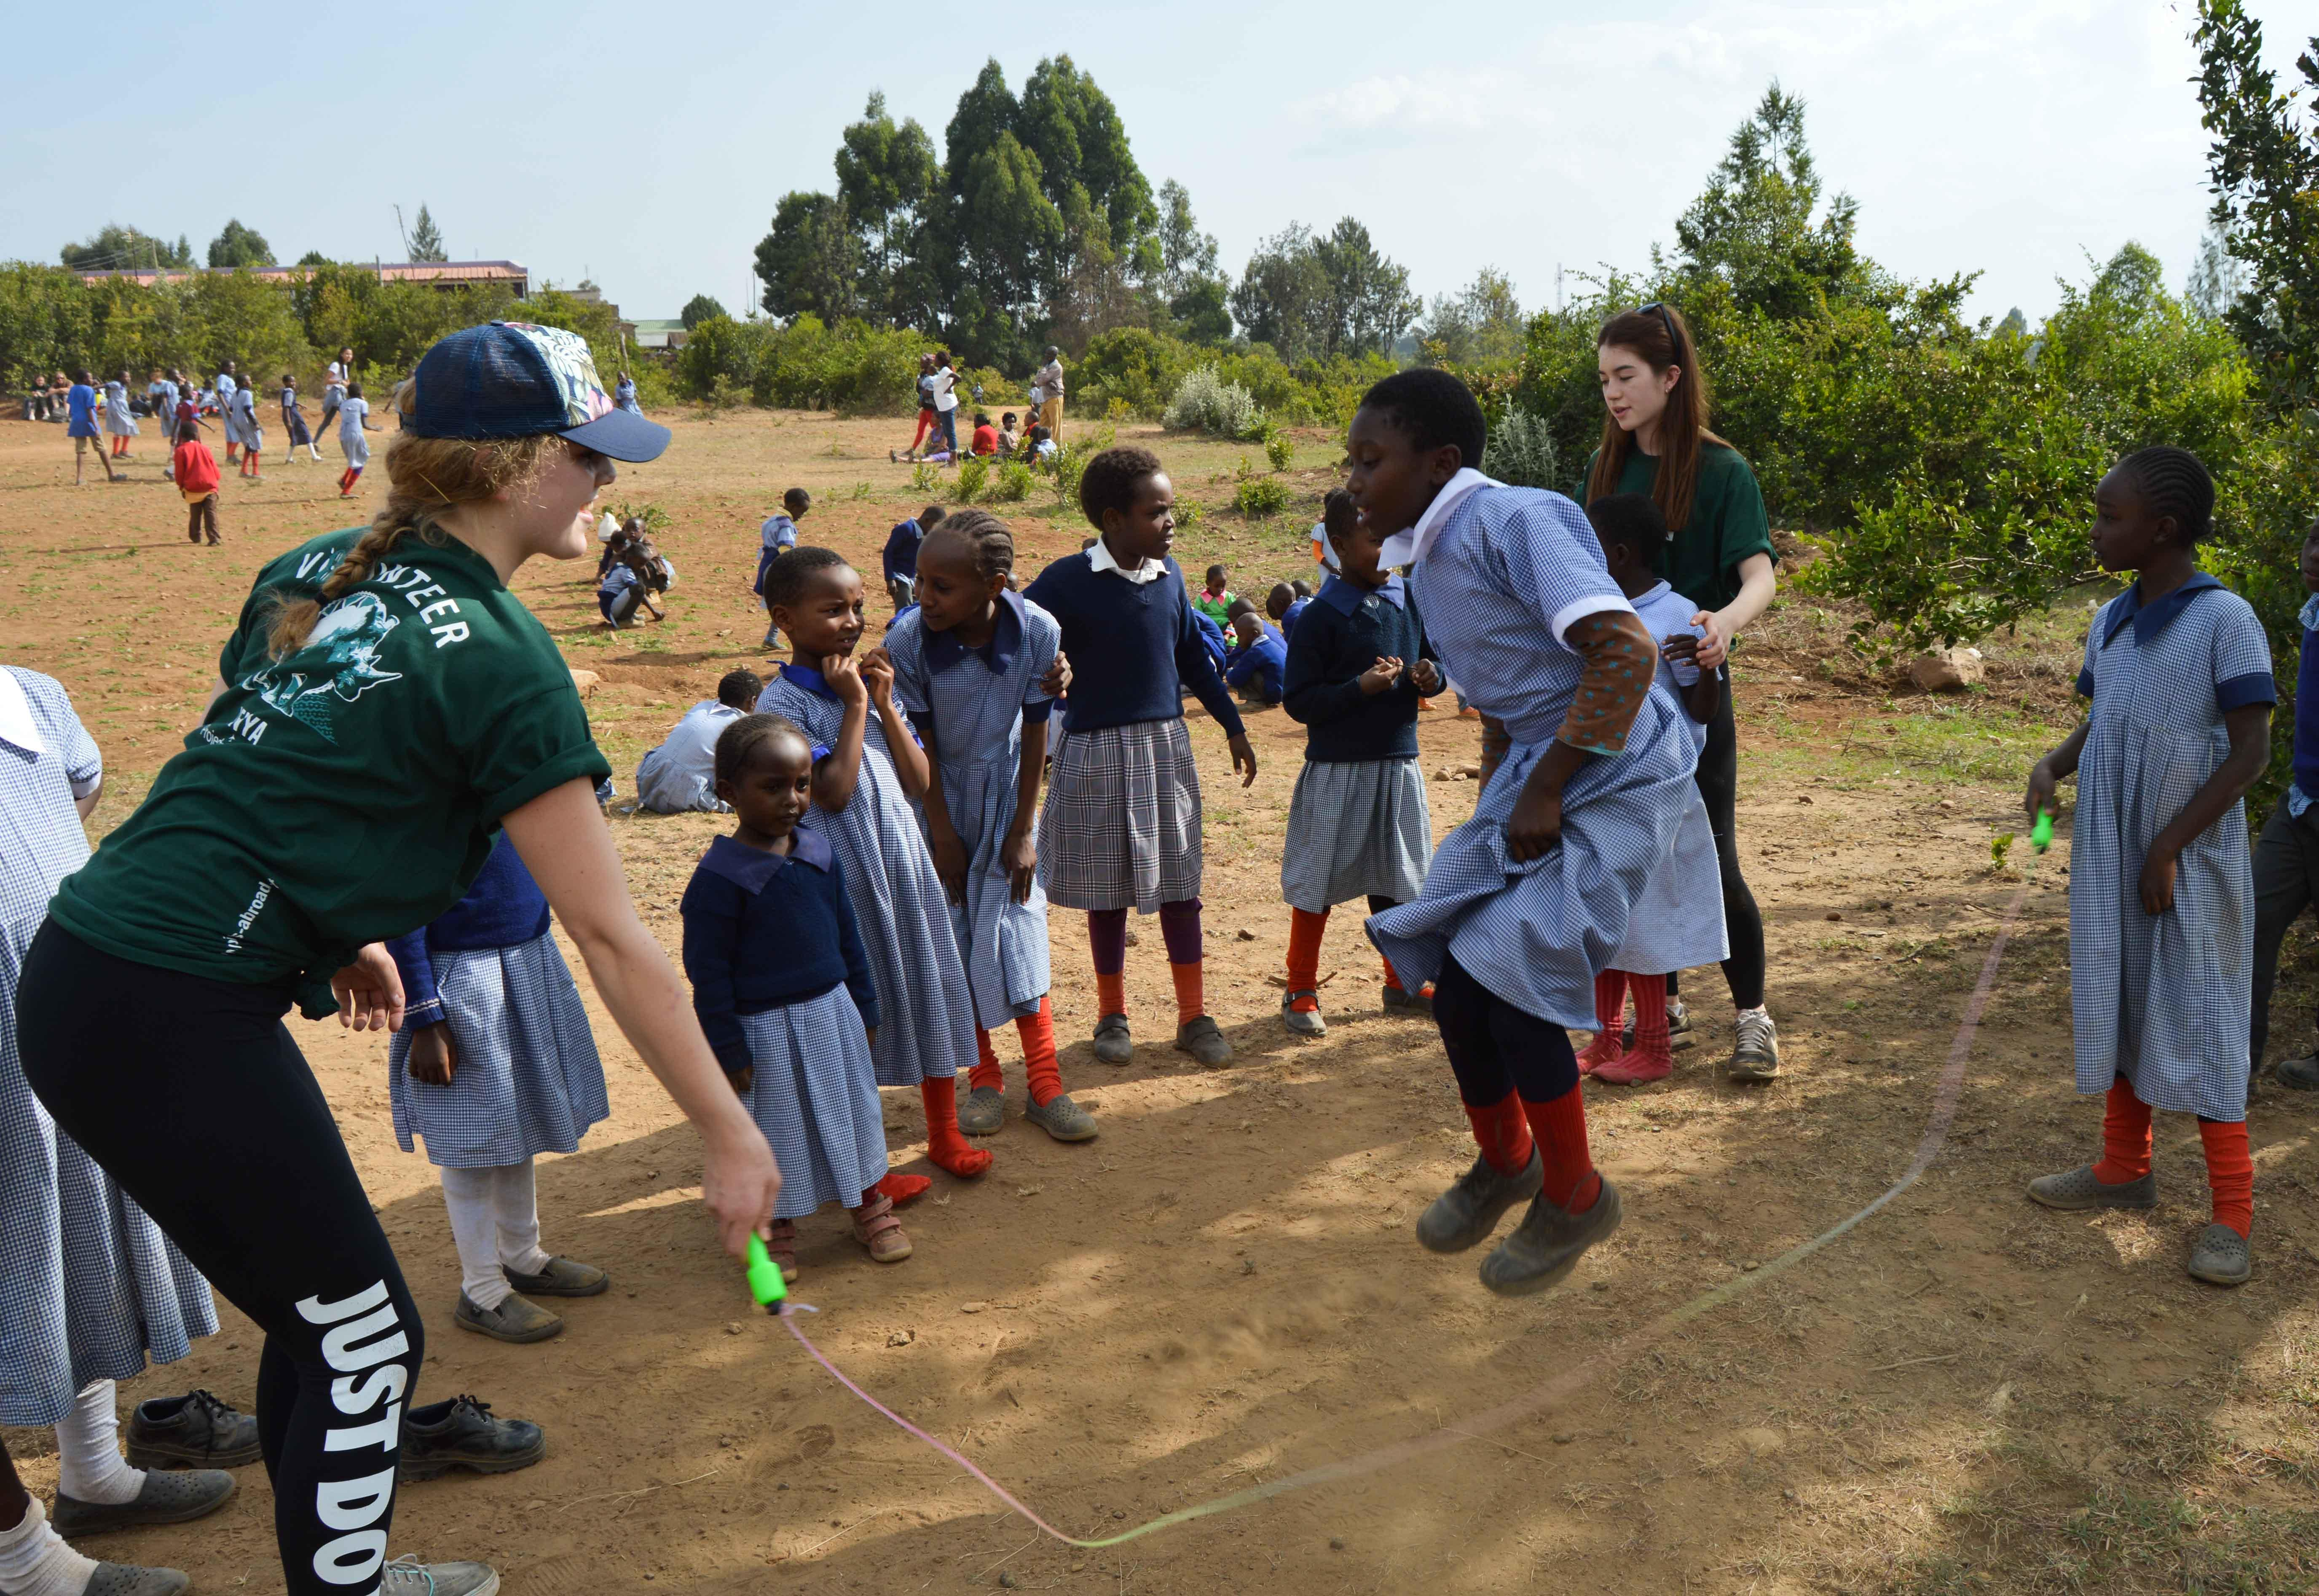 A Projects Abroad volunteer gets hands-on sports coaching experience in Kenya while running a fun activity with children